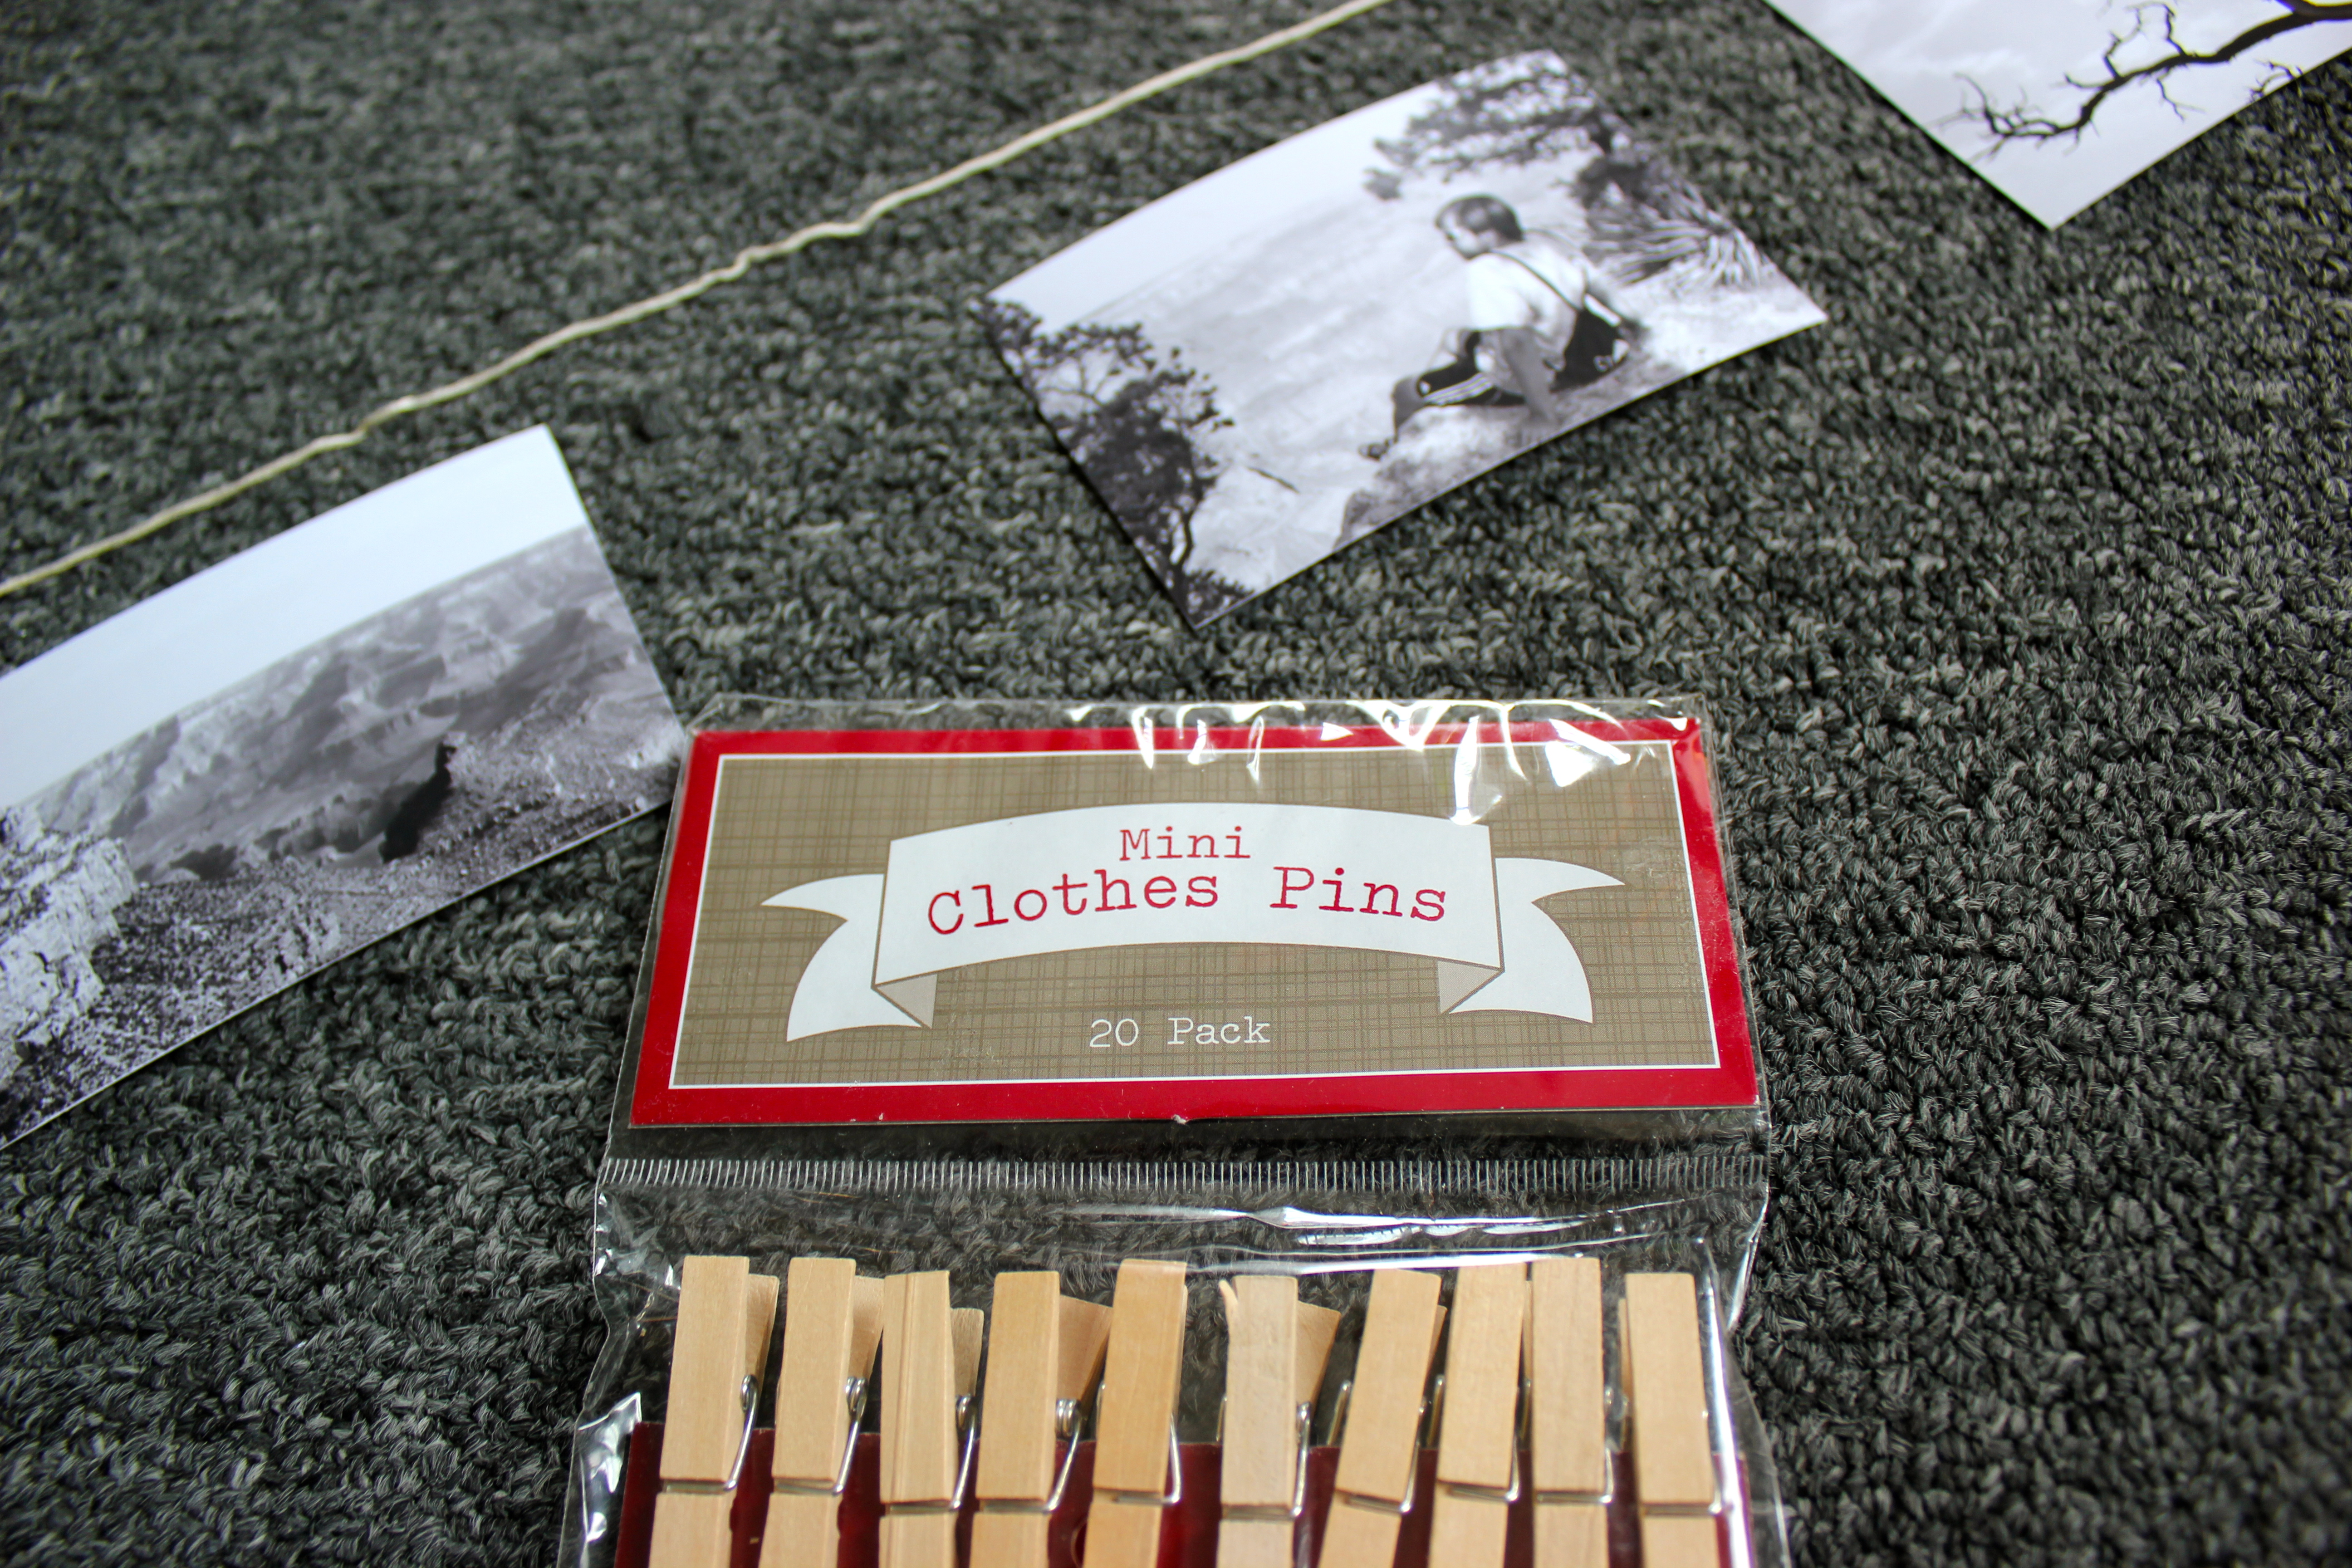 Diy Mini Clothespin Picture Display Niftythriftygoodwill Circuit Board Table Decor Nifty Ideas Crafty Crafts Pin 4